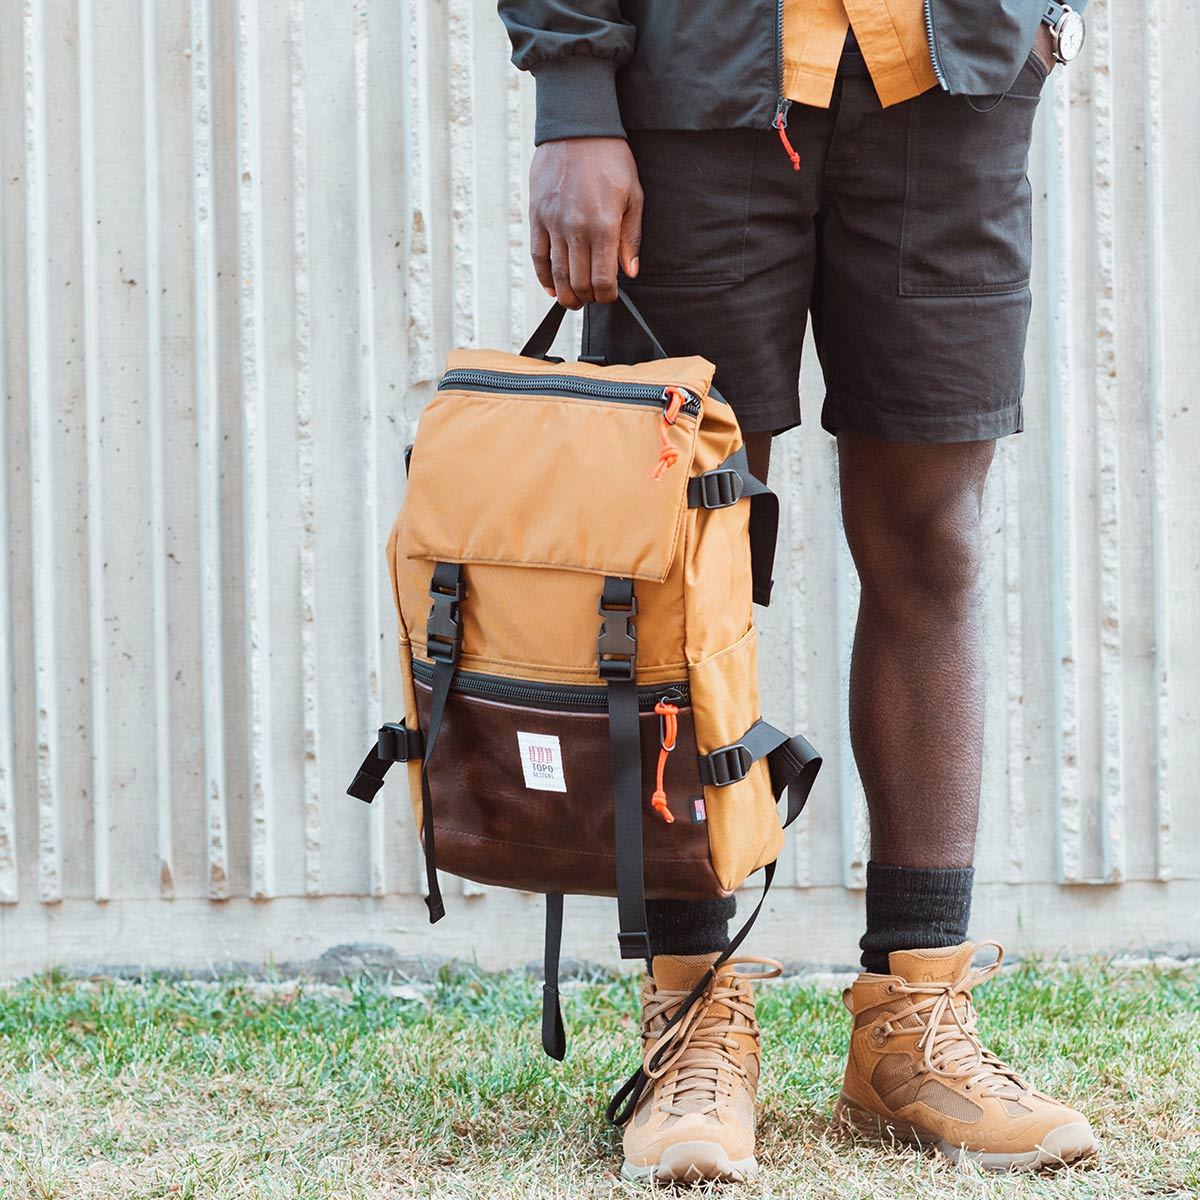 Topo Designs Rover Pack Heritage Duck Brown/Dark Brown Leather, durable, lightweight and water-resistant pack for daily use